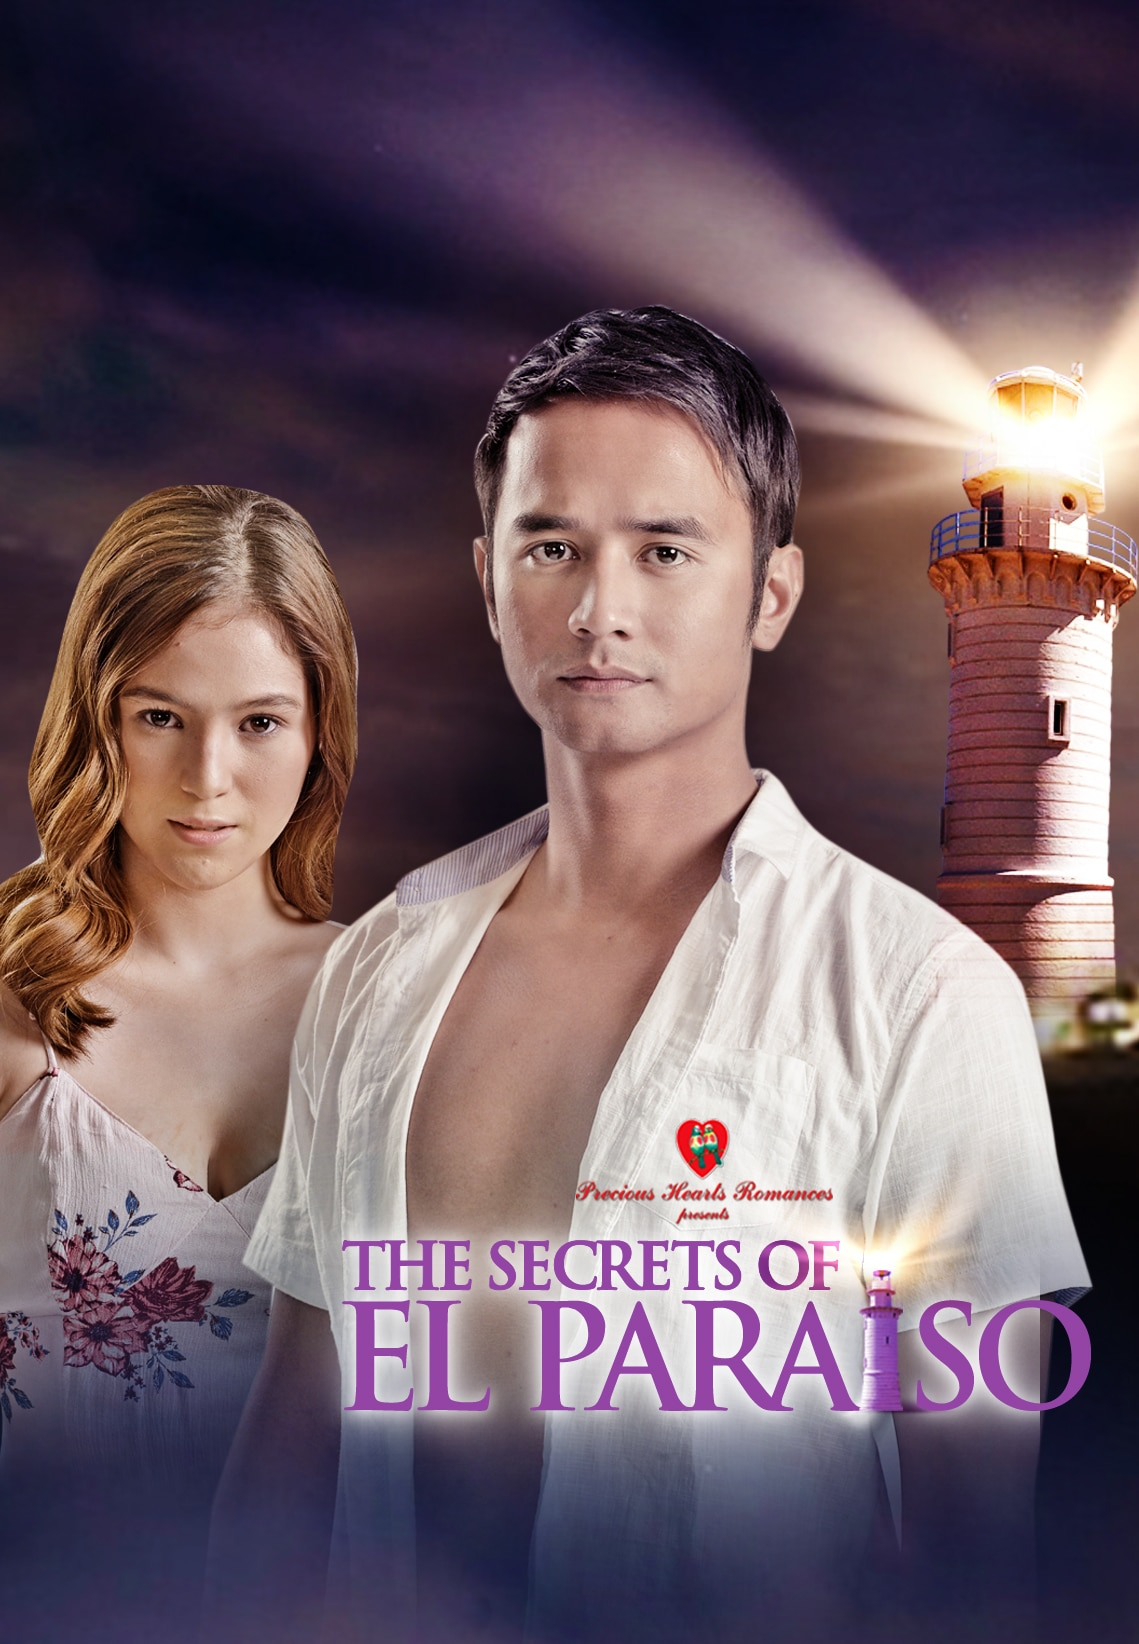 The Secrets of El Paraiso